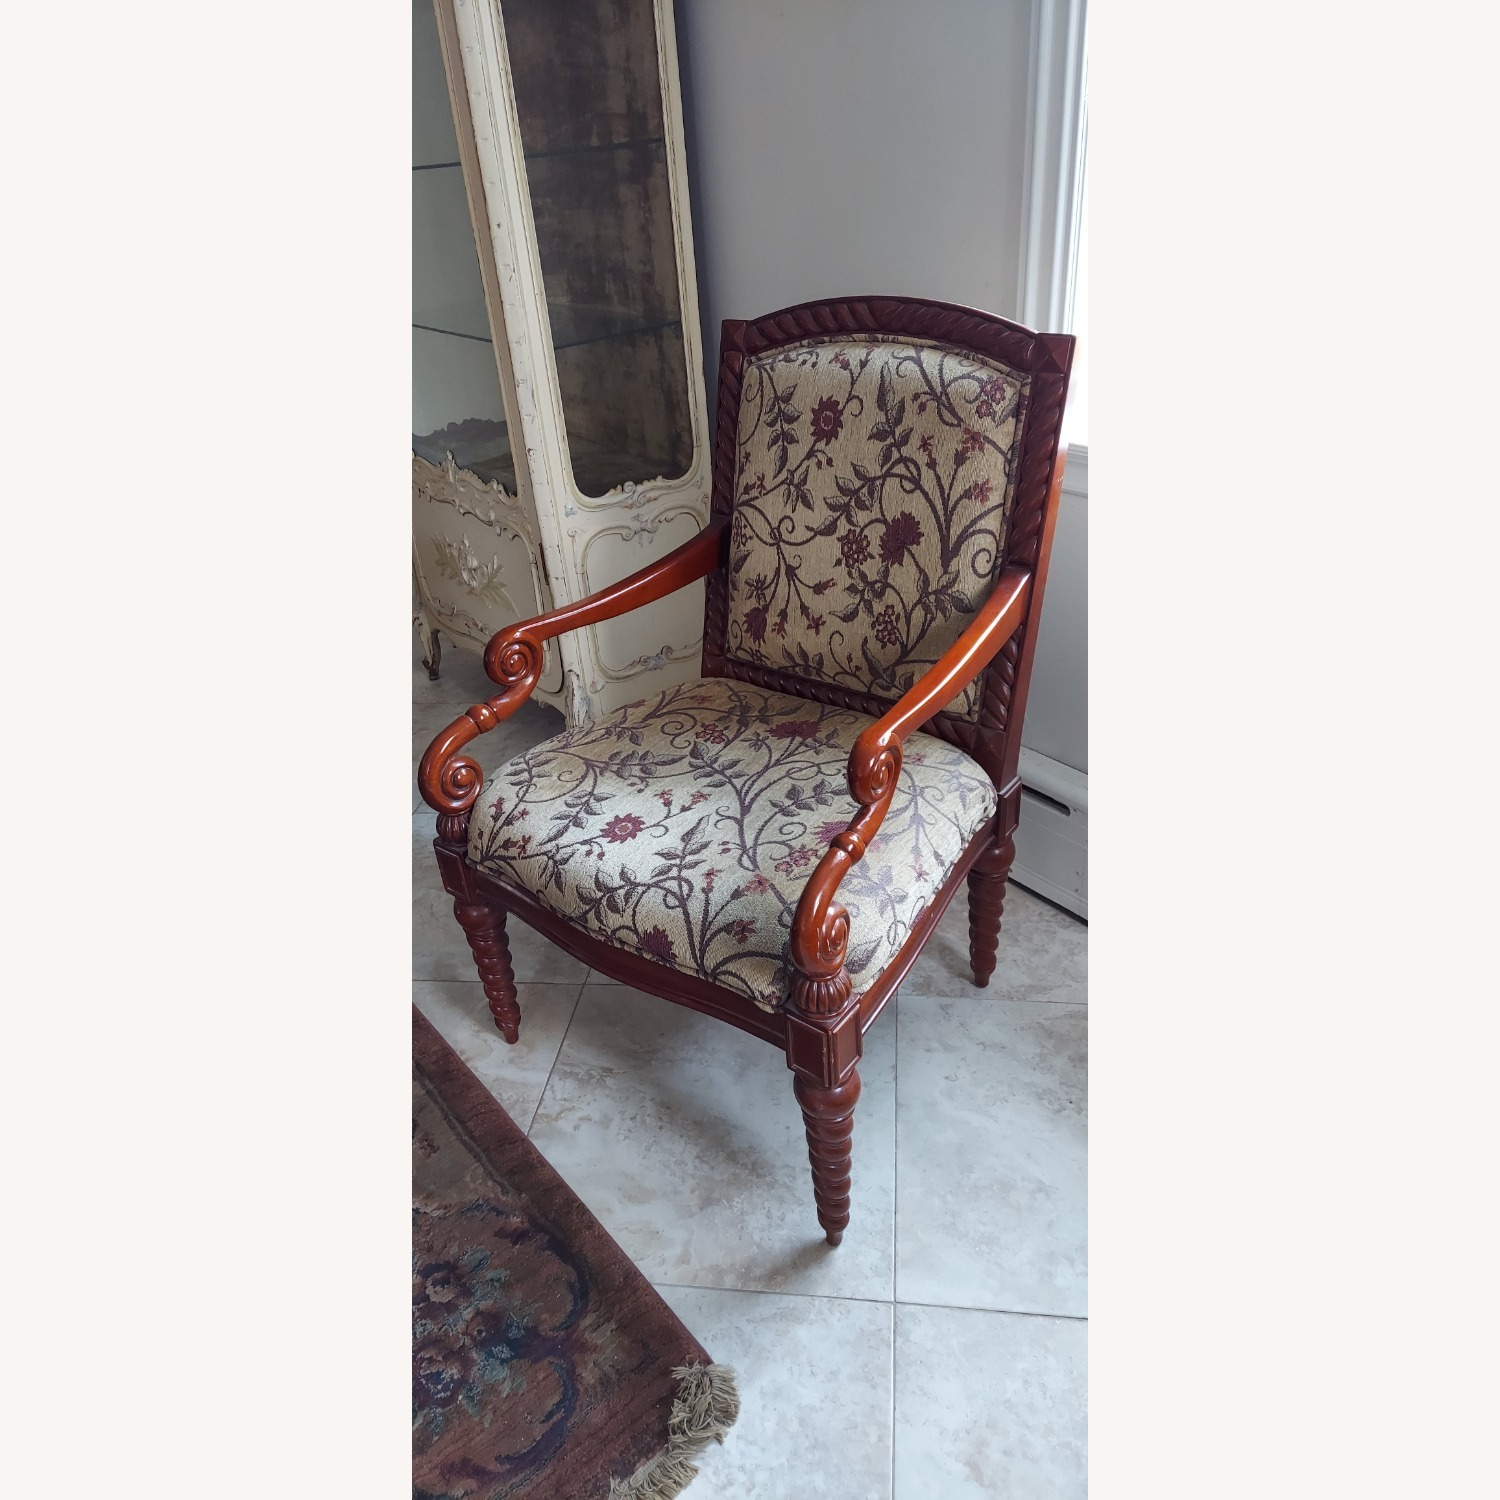 Bombay Company Accent Chair - image-2